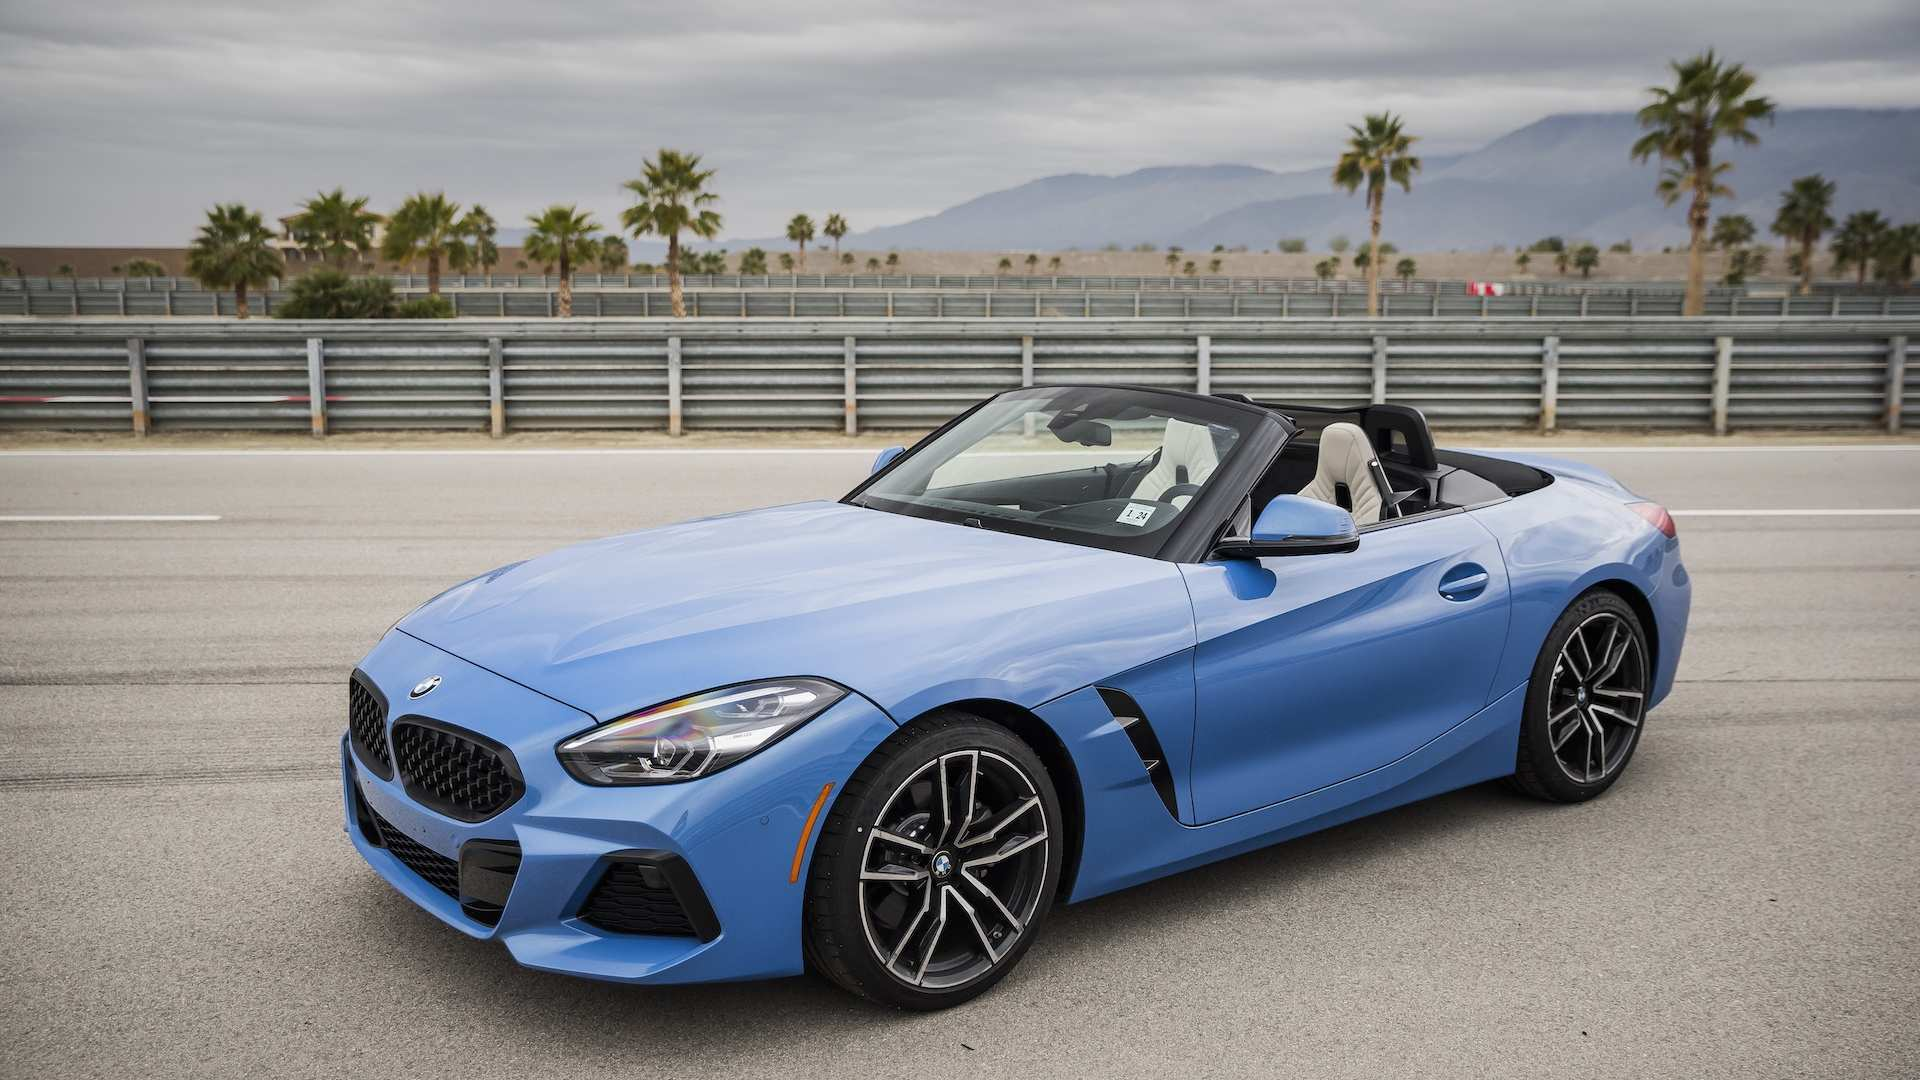 37 The Best 2019 BMW Z4 Roadster Photos